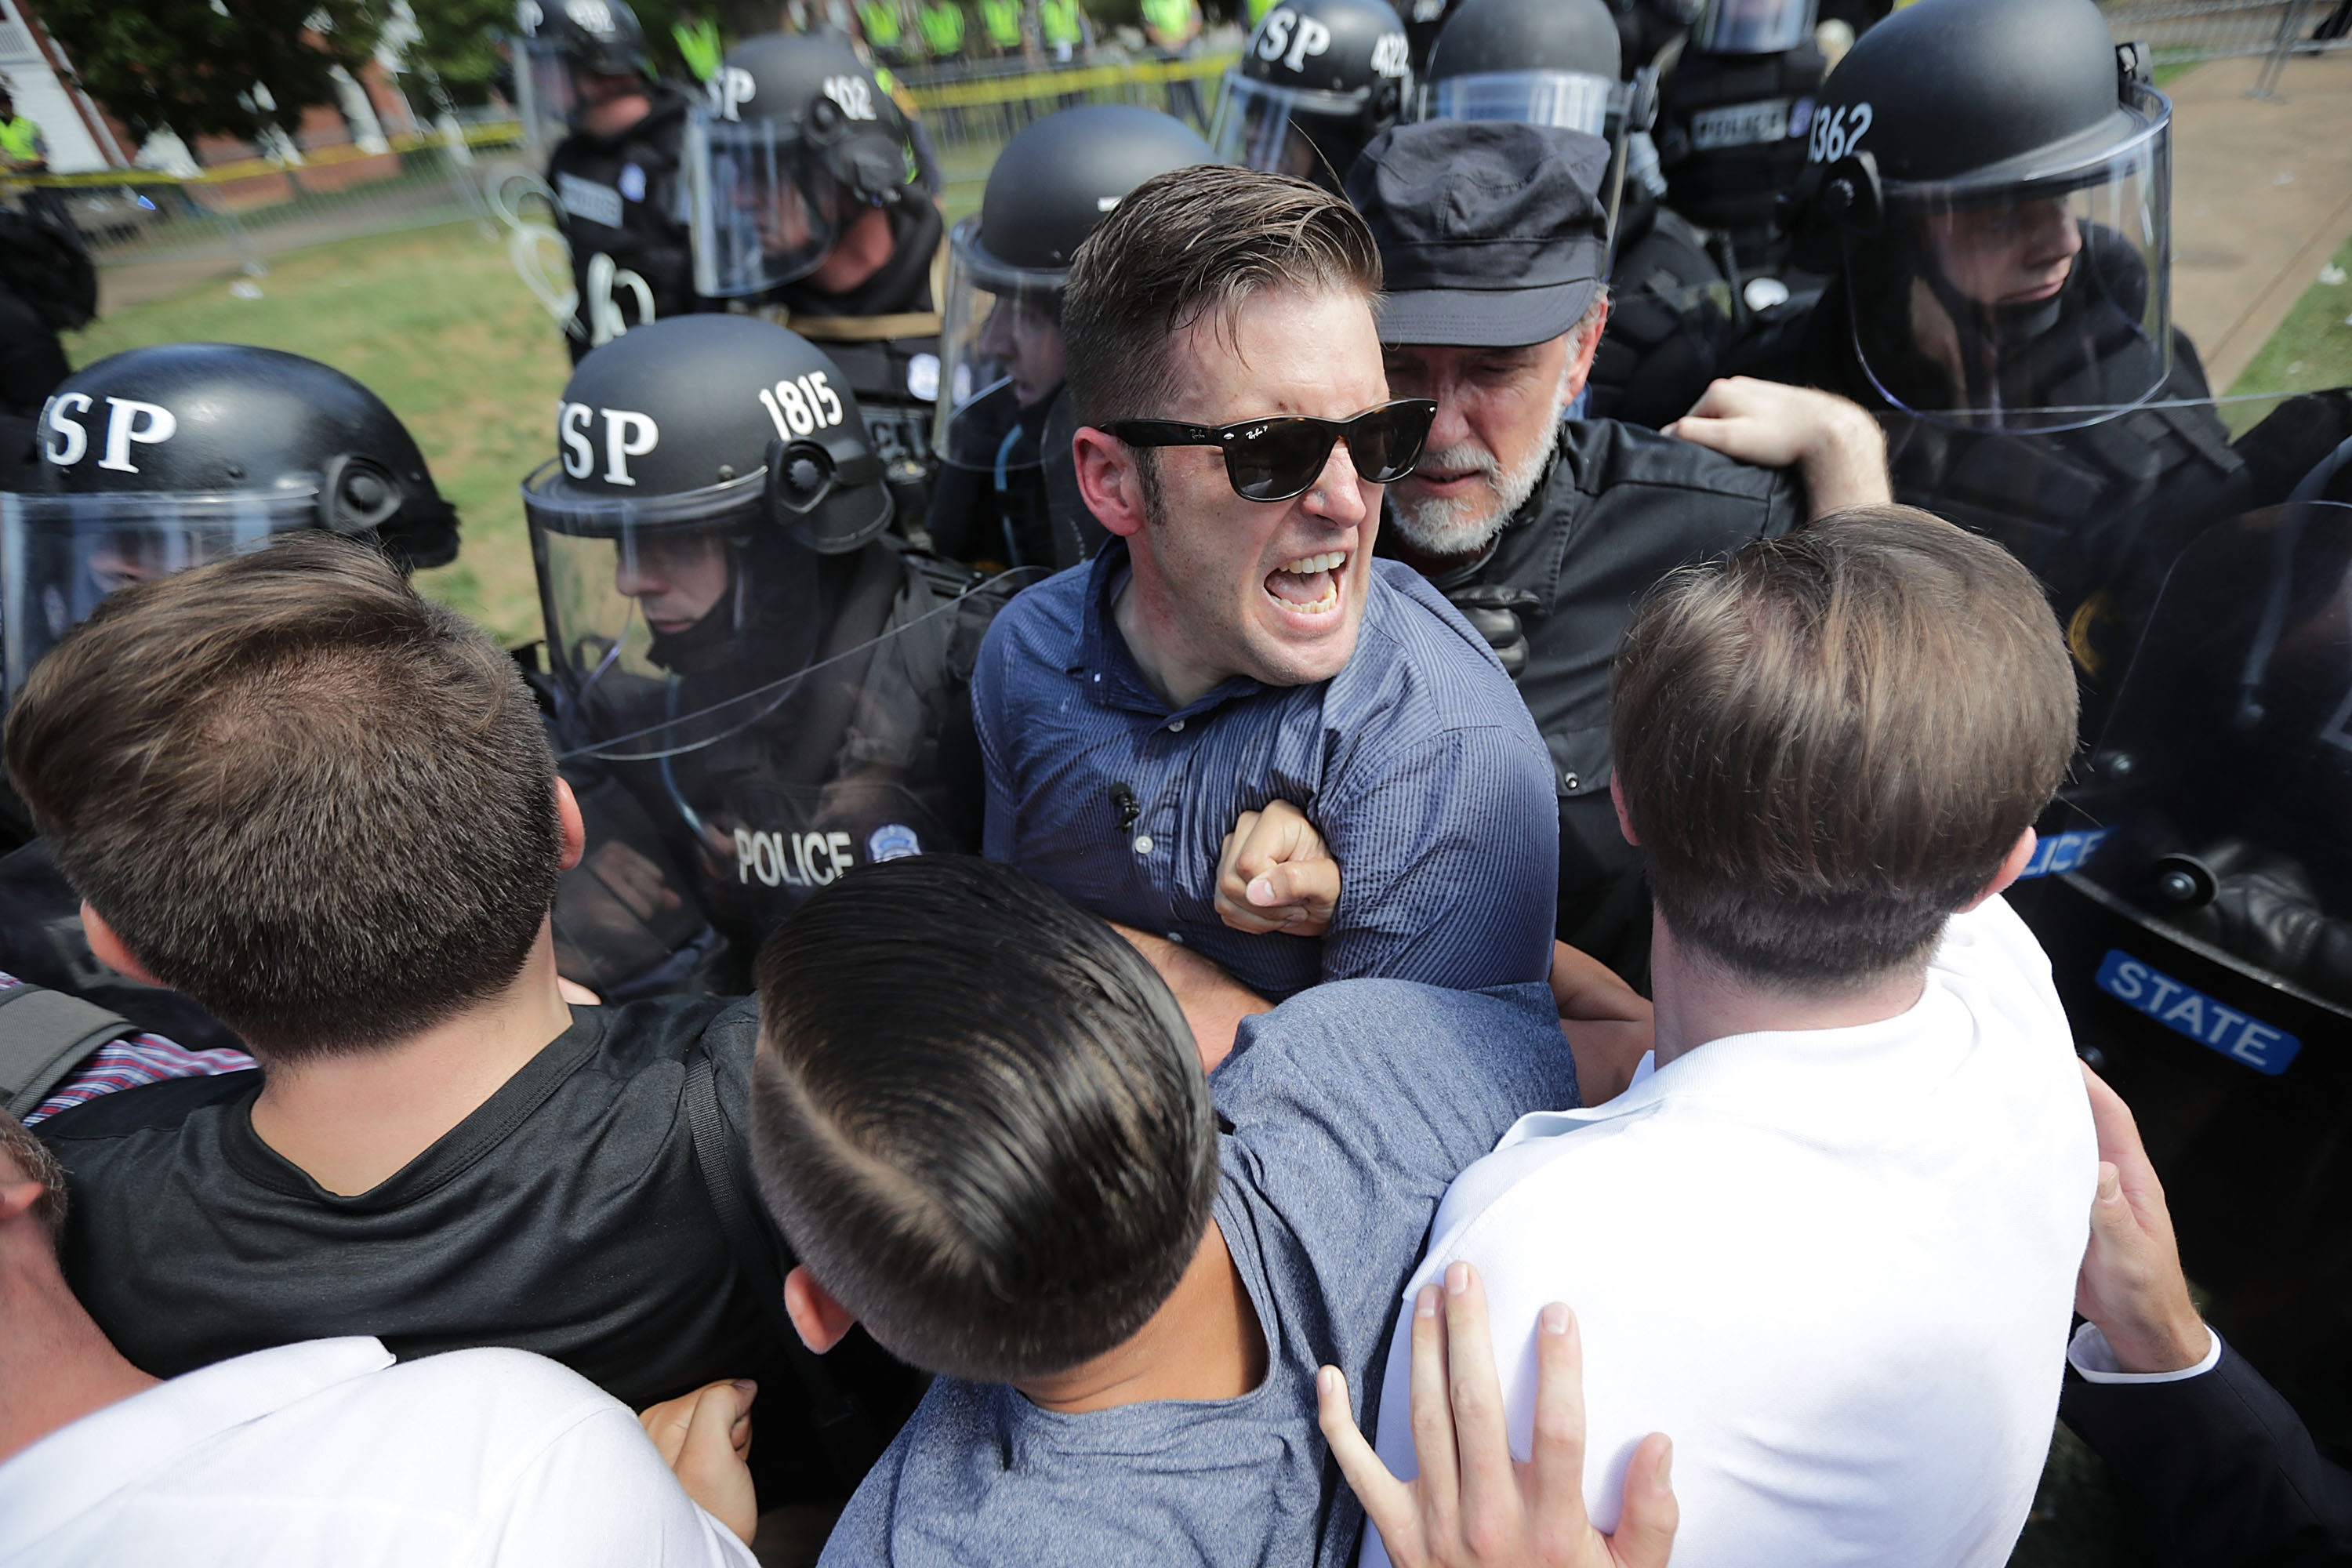 'Unite the Right' Organizers Are Facing a Court Case That Could Bankrupt Them - vice